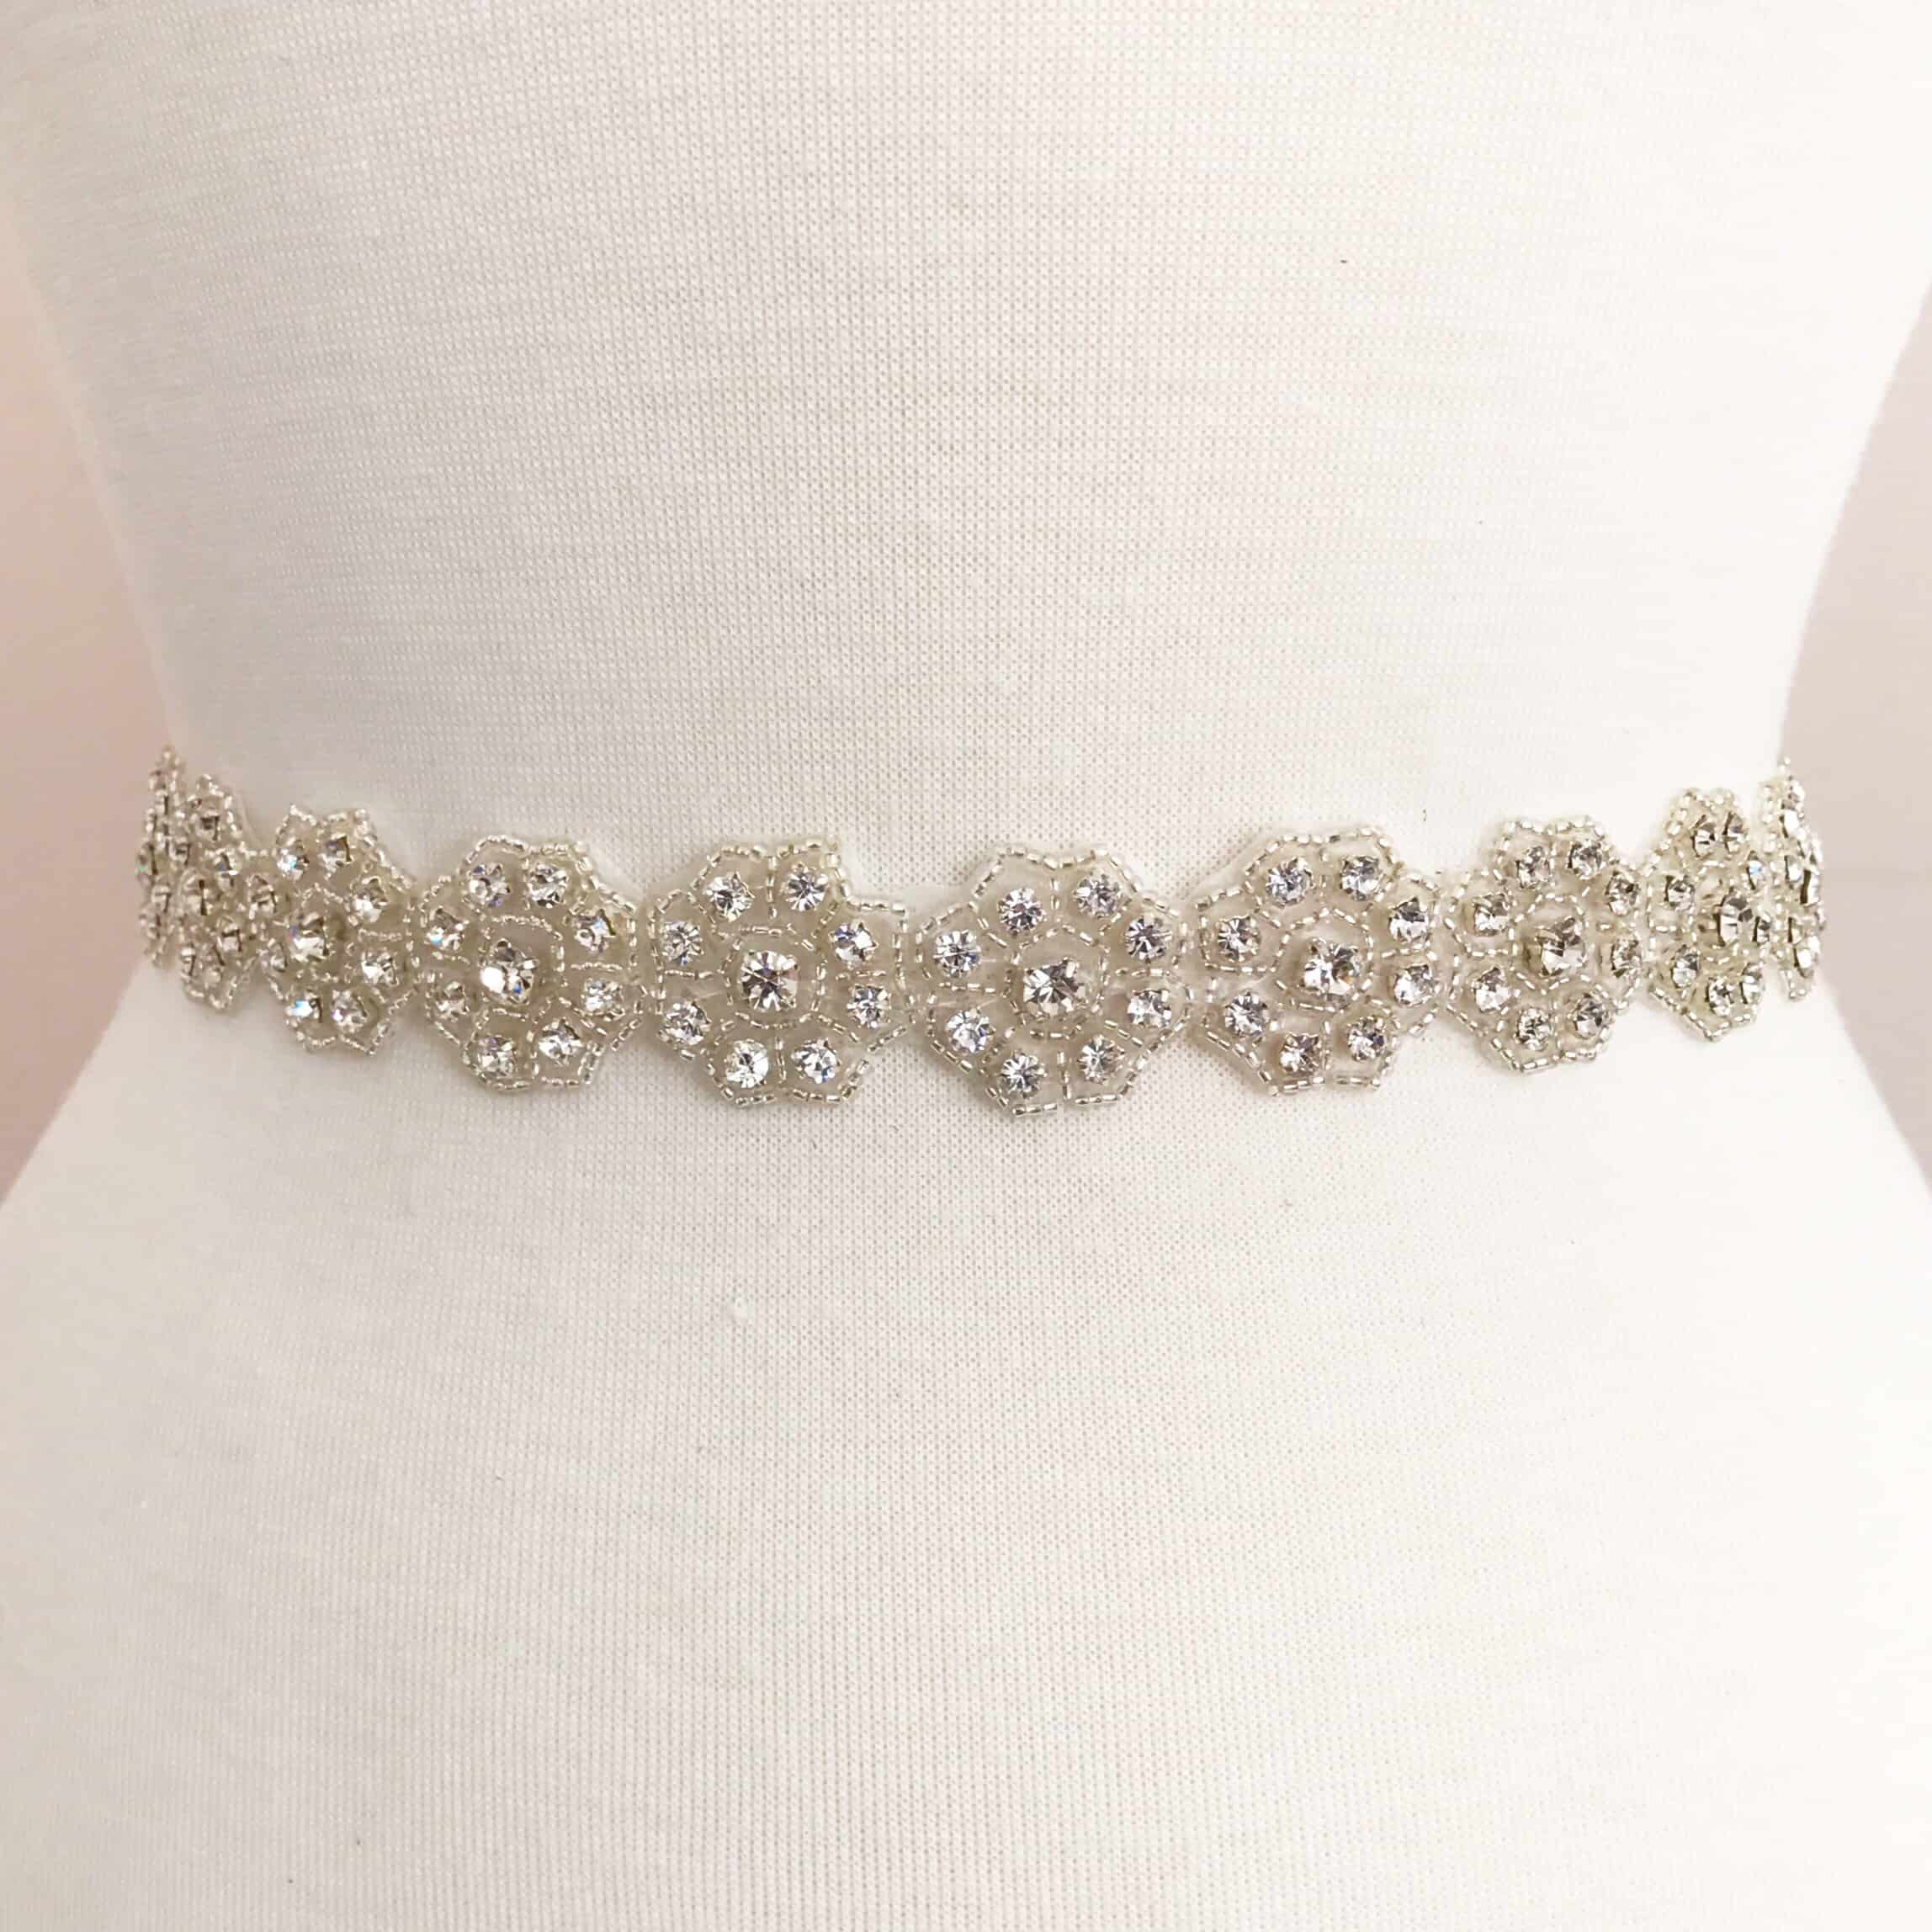 *SALE* Petit Rhinestone Flower Trim